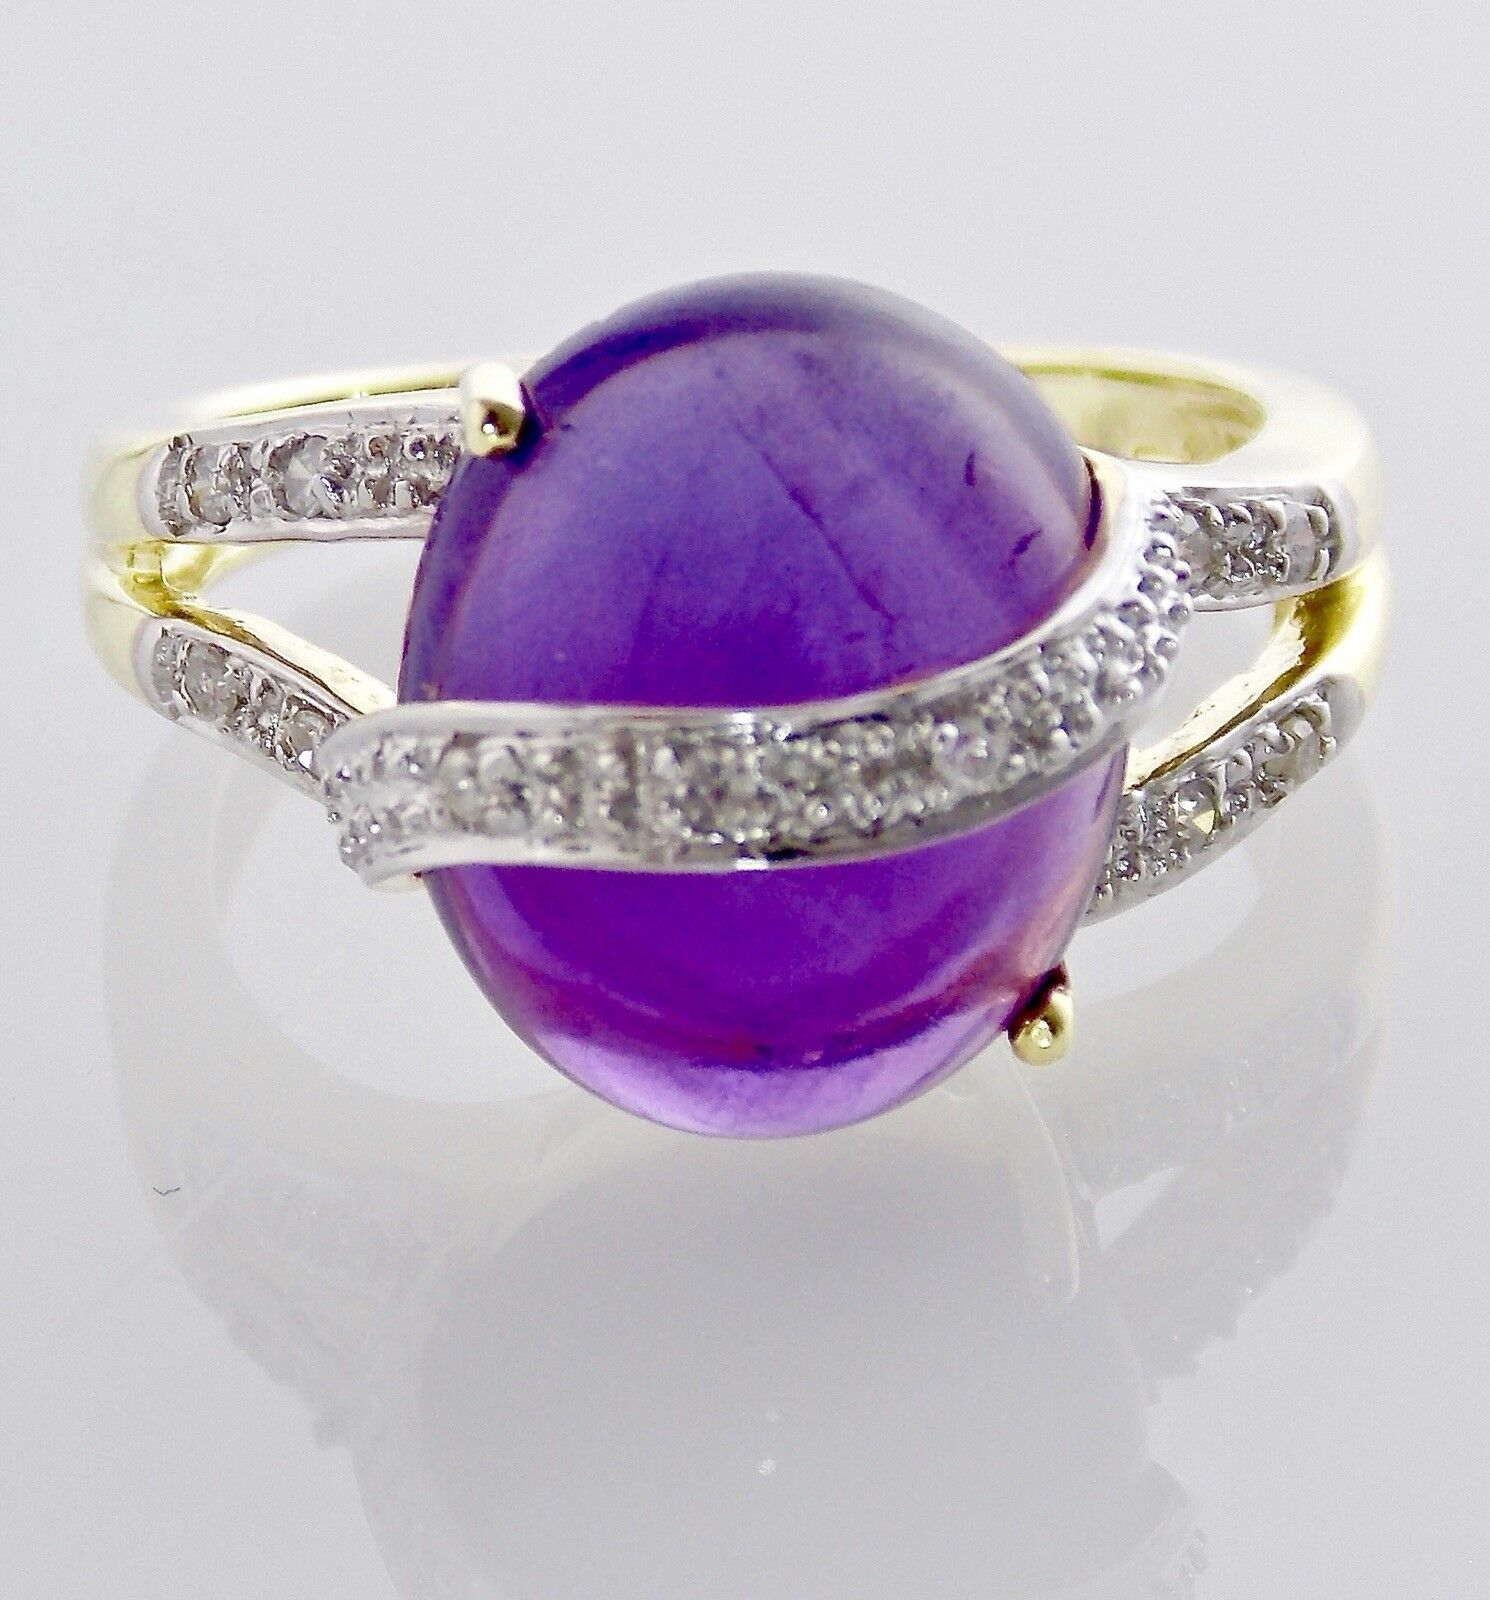 Amethyst Ring 14KT YELLOW gold 6.65CT CABOCHON AMETHYST W  DIAMOND ACCENT RING